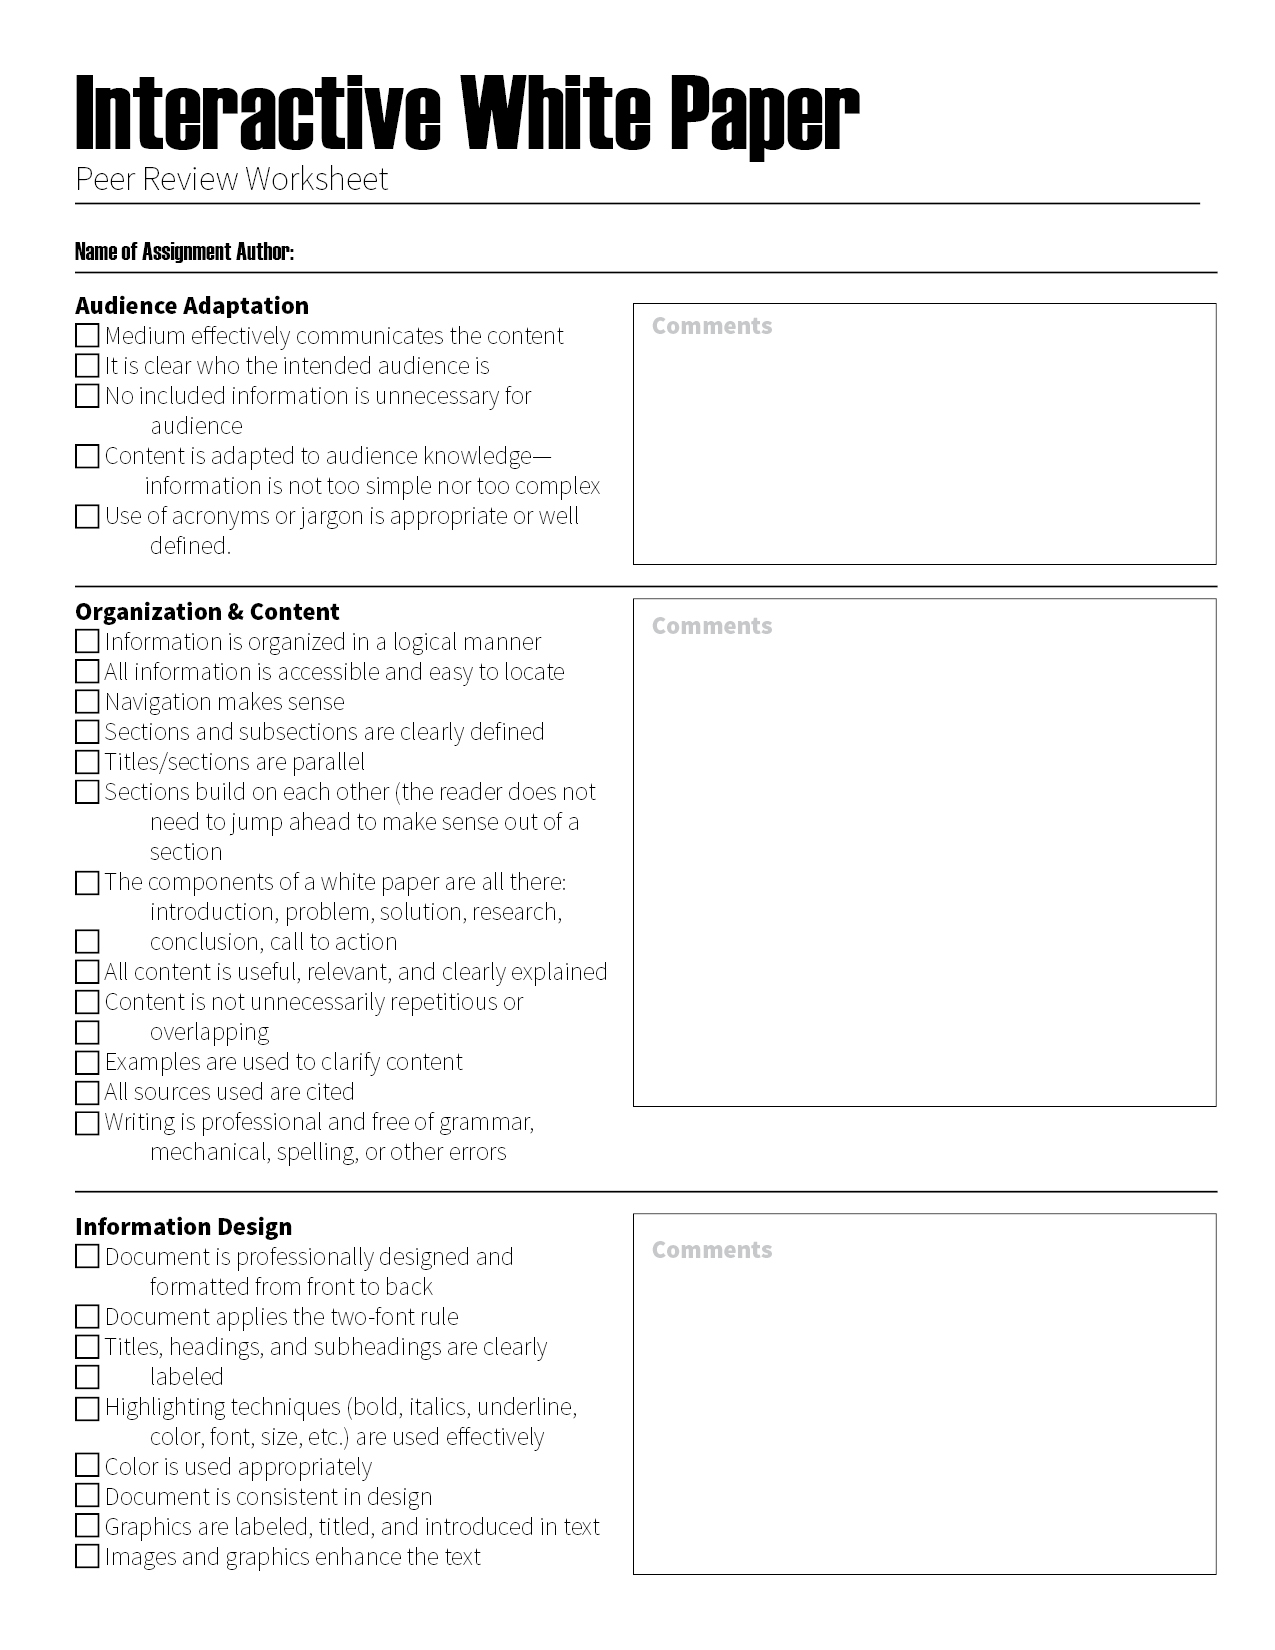 Interactive Peer Review Checklist The Visual